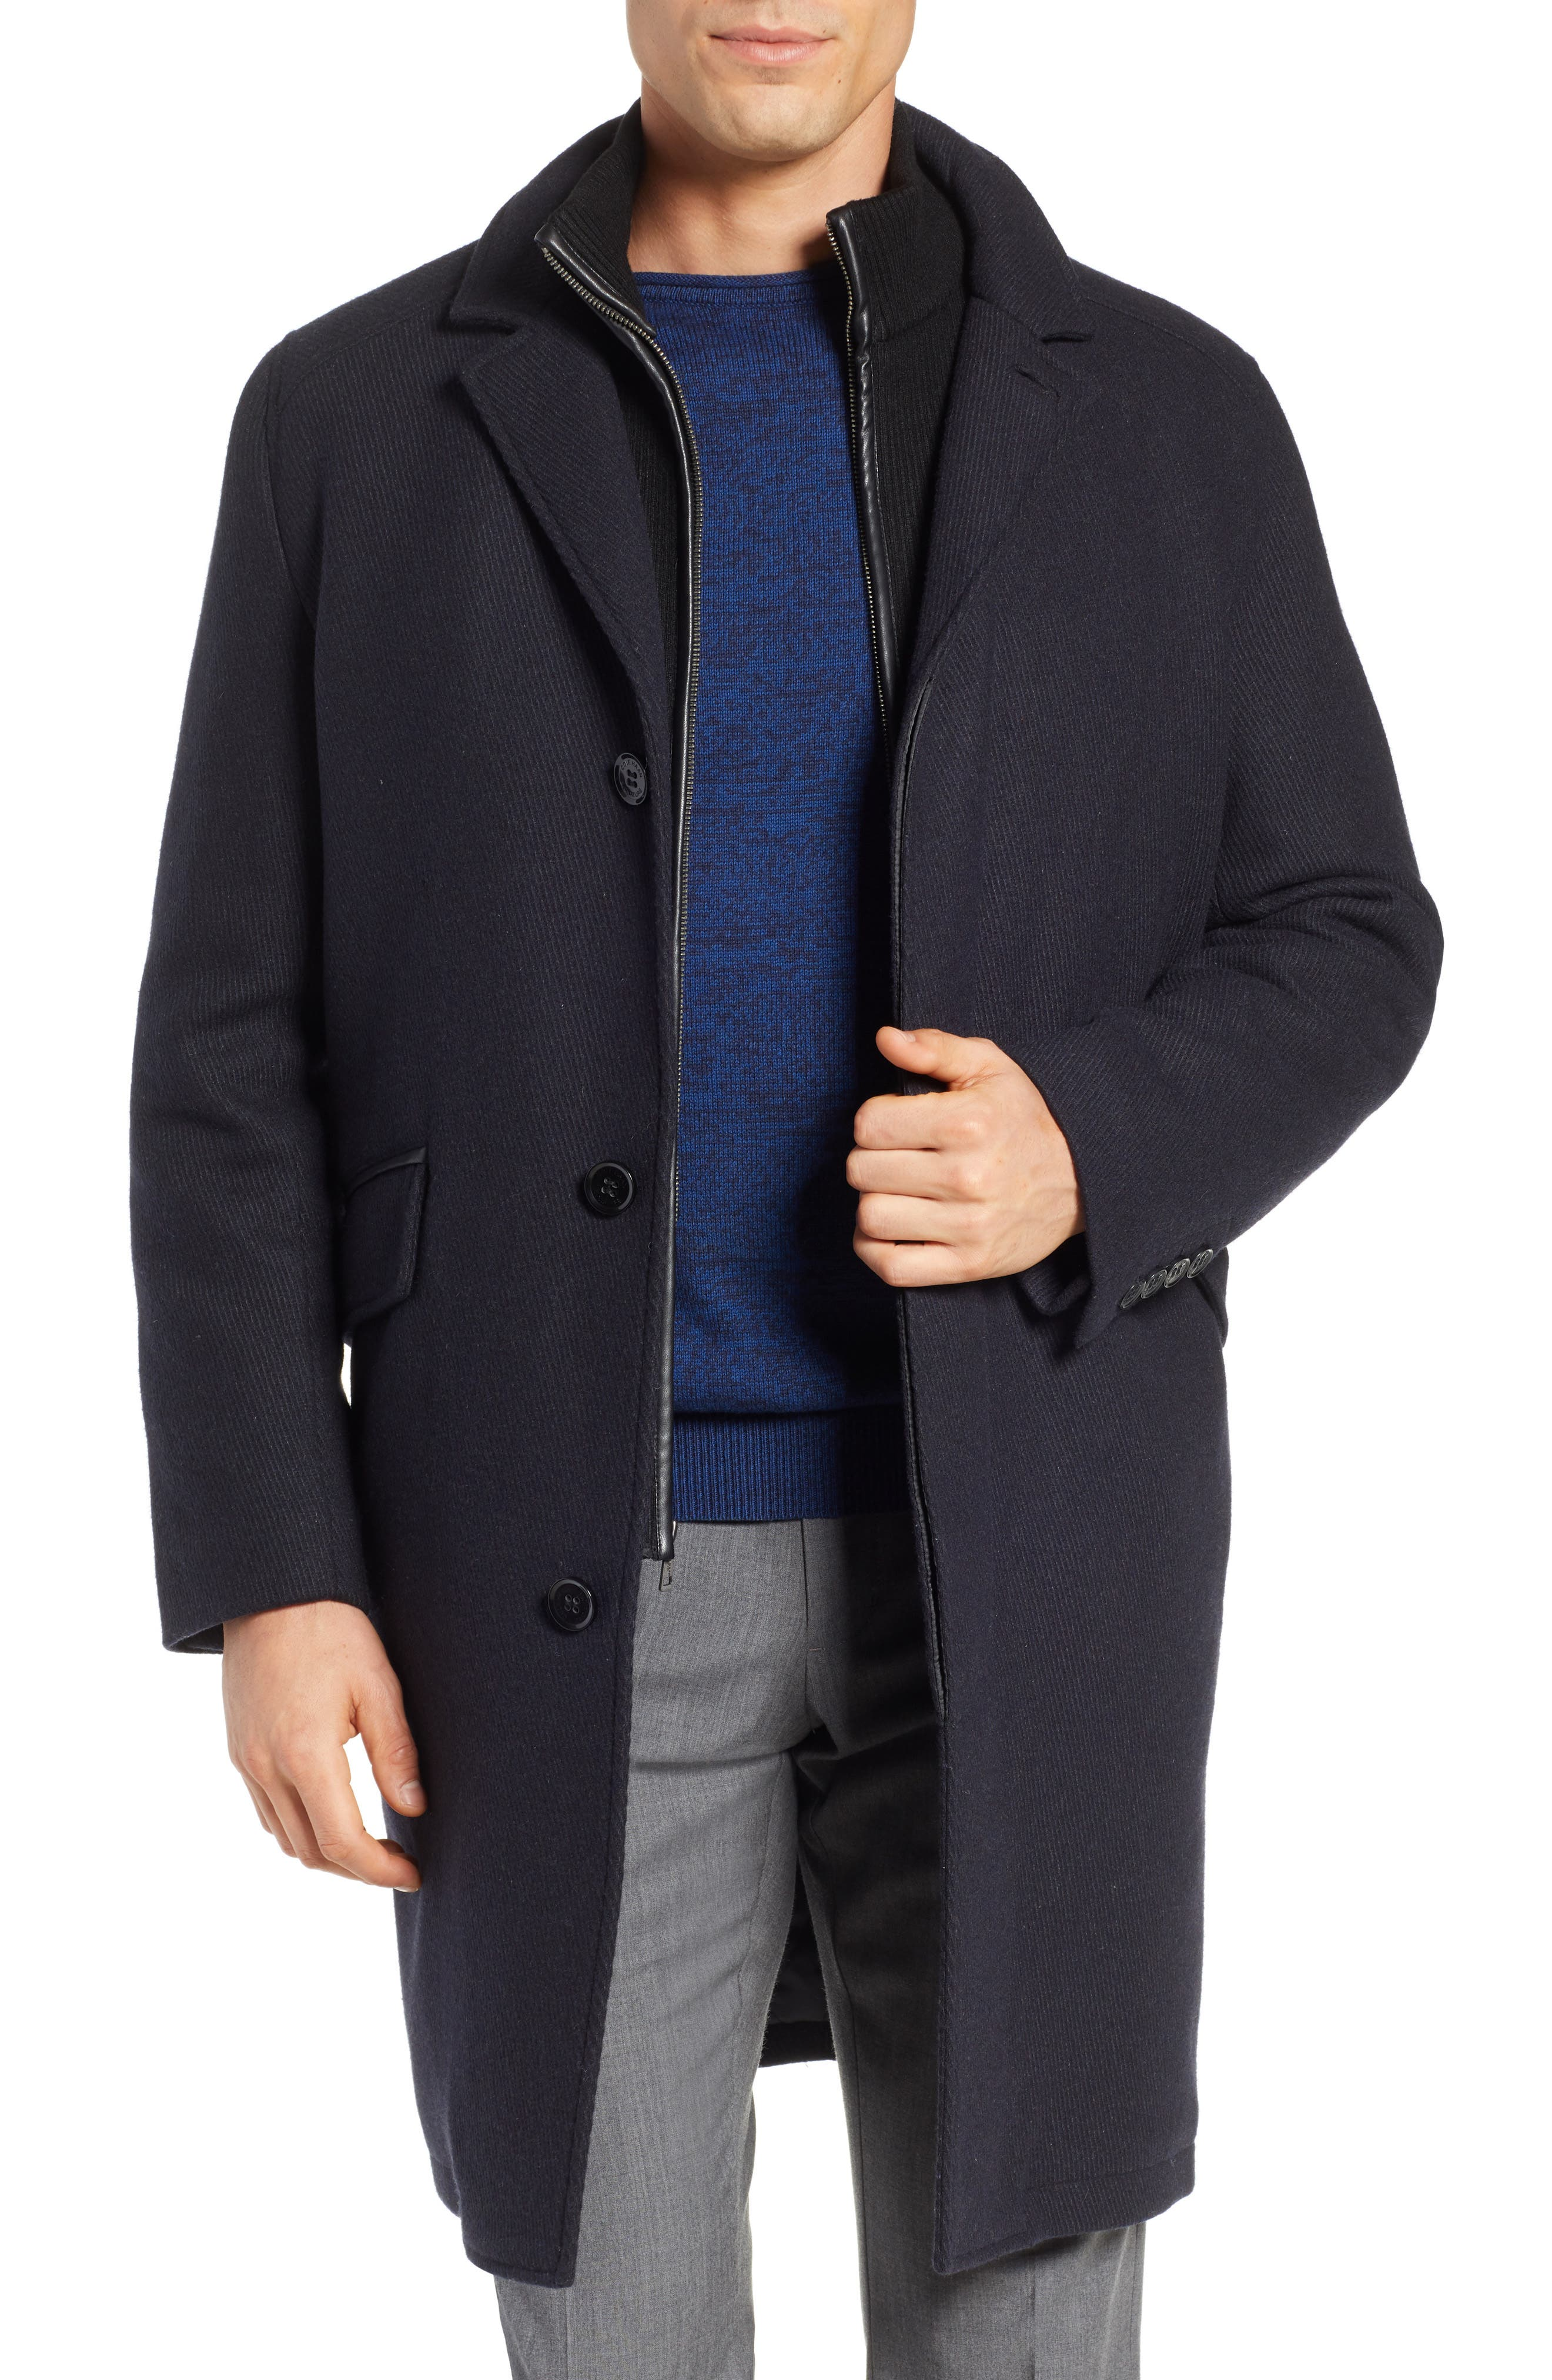 Wool Blend Overcoat with Knit Bib Inset,                             Main thumbnail 1, color,                             410